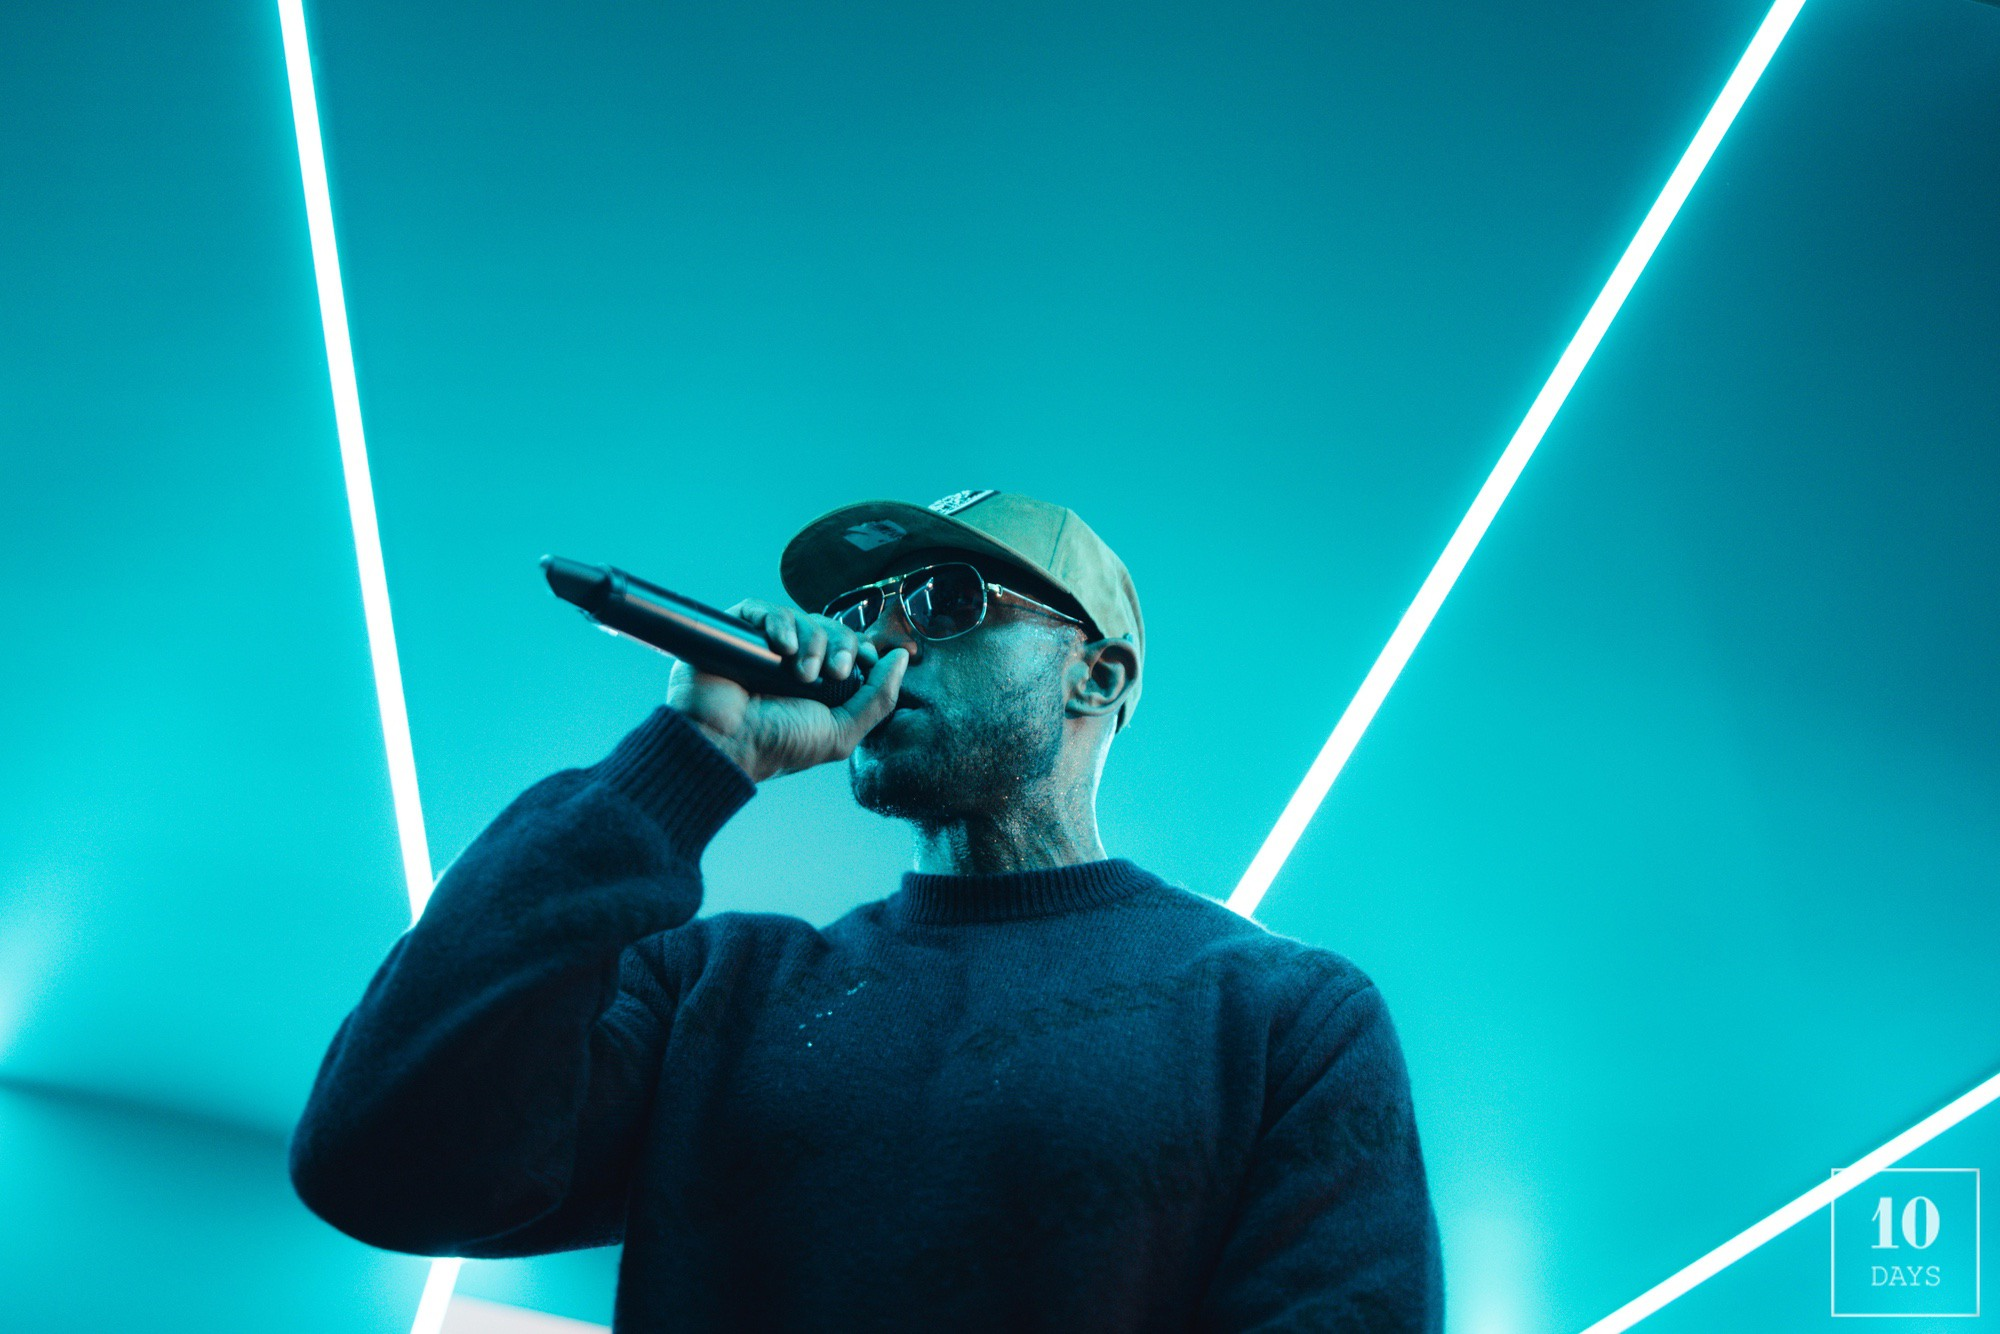 Reebok teams up with Booba for a private showcase arthur mestrot